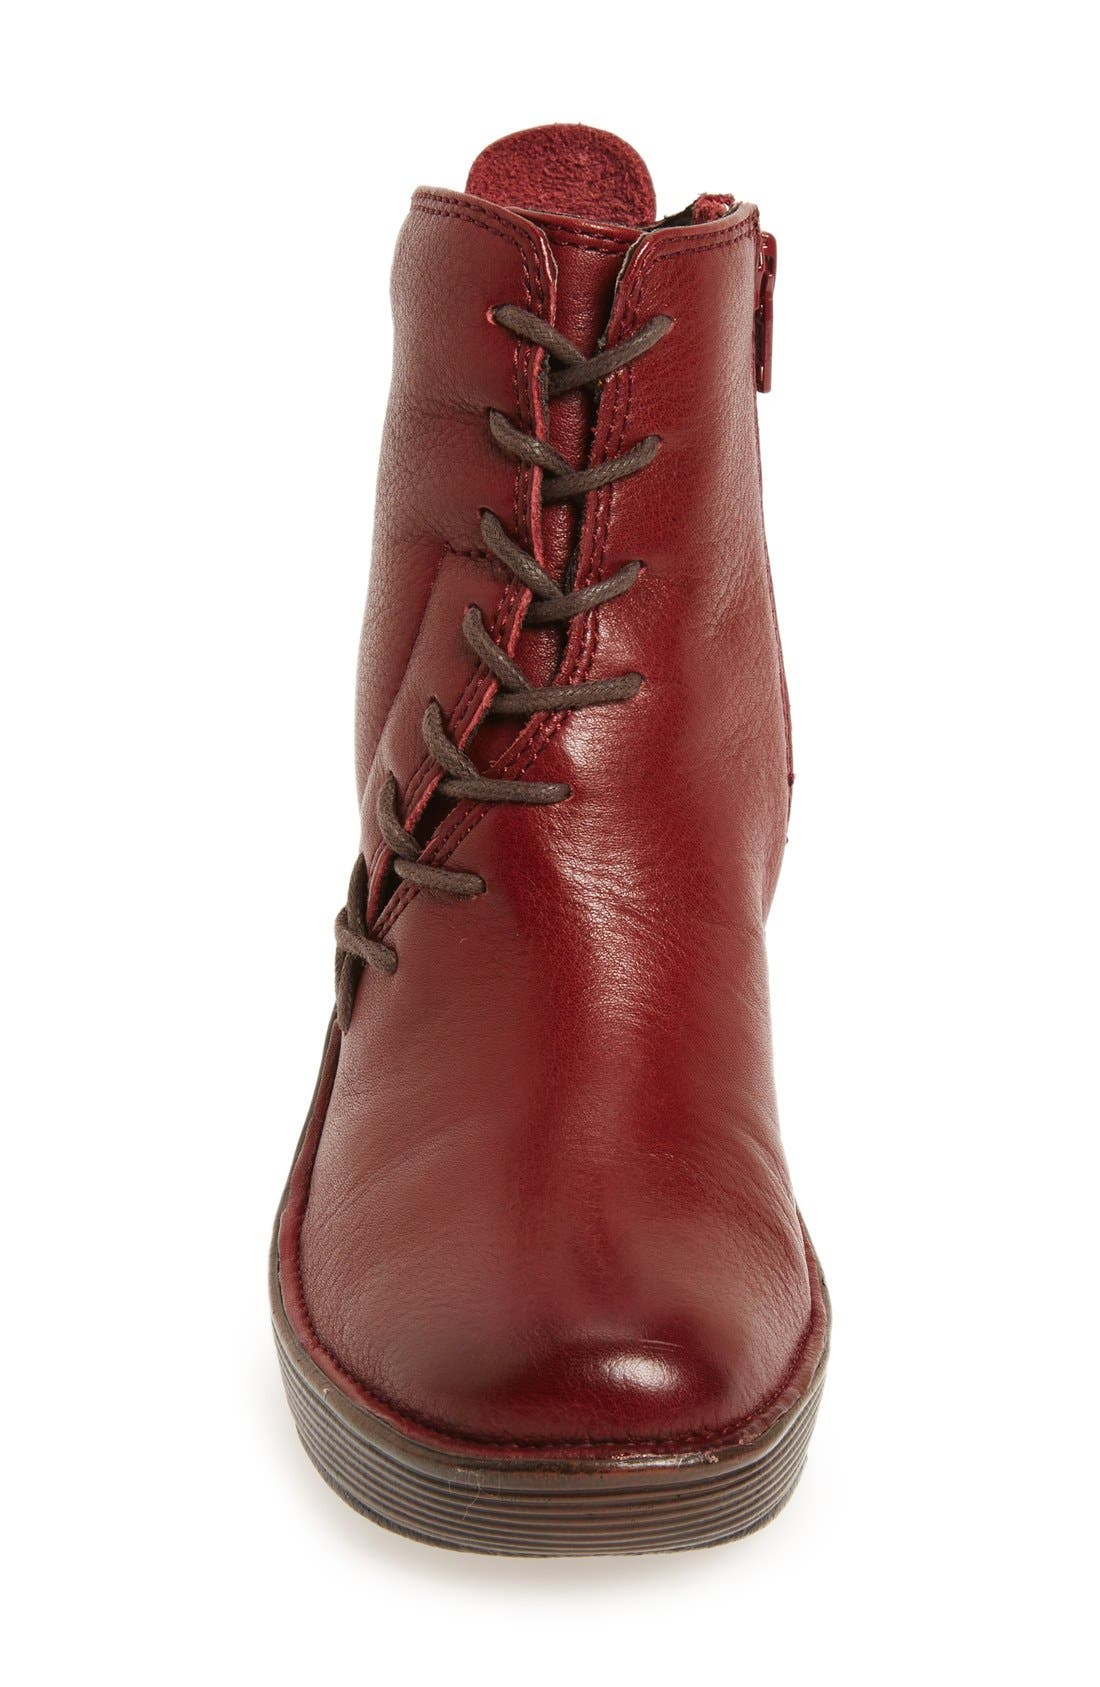 'Corset' Bootie,                             Alternate thumbnail 3, color,                             Russet Red Nubuck Leather